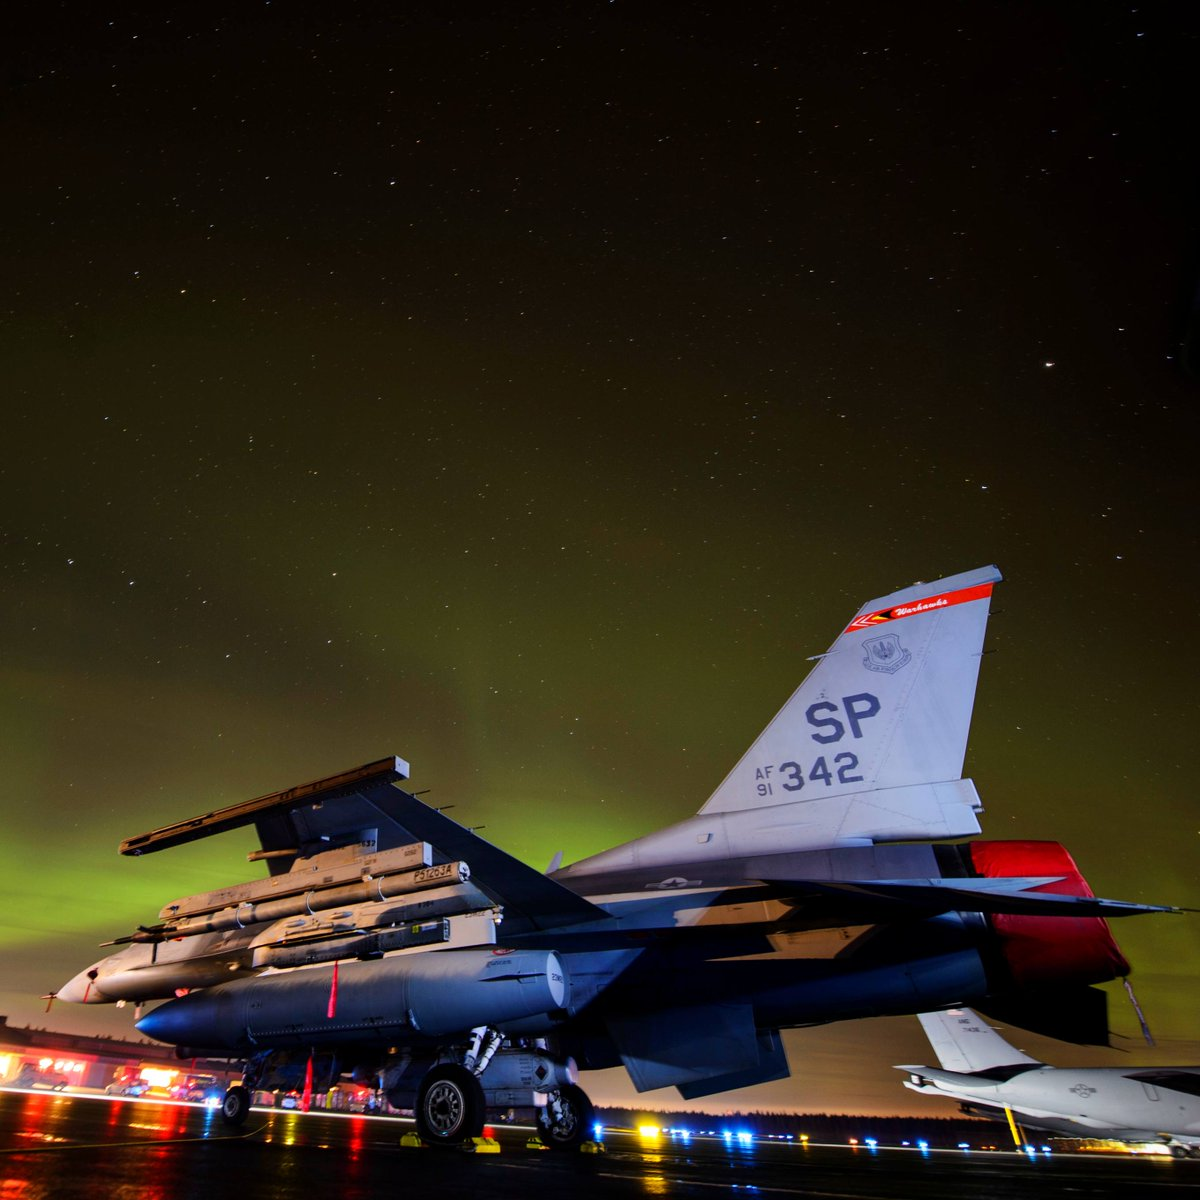 An F-16 Fighting Falcon assigned to the 480th Expeditionary Fighter Squadron sits on the flight line under the Aurora Borealis at Kallax Air Base, Sweden. . . . #F16 #Falcon #Viper #Pilot #USA #F16Viper #AirForce #USAF #AviationEnthusiast #Military #PilotLife #MilitaryMachine